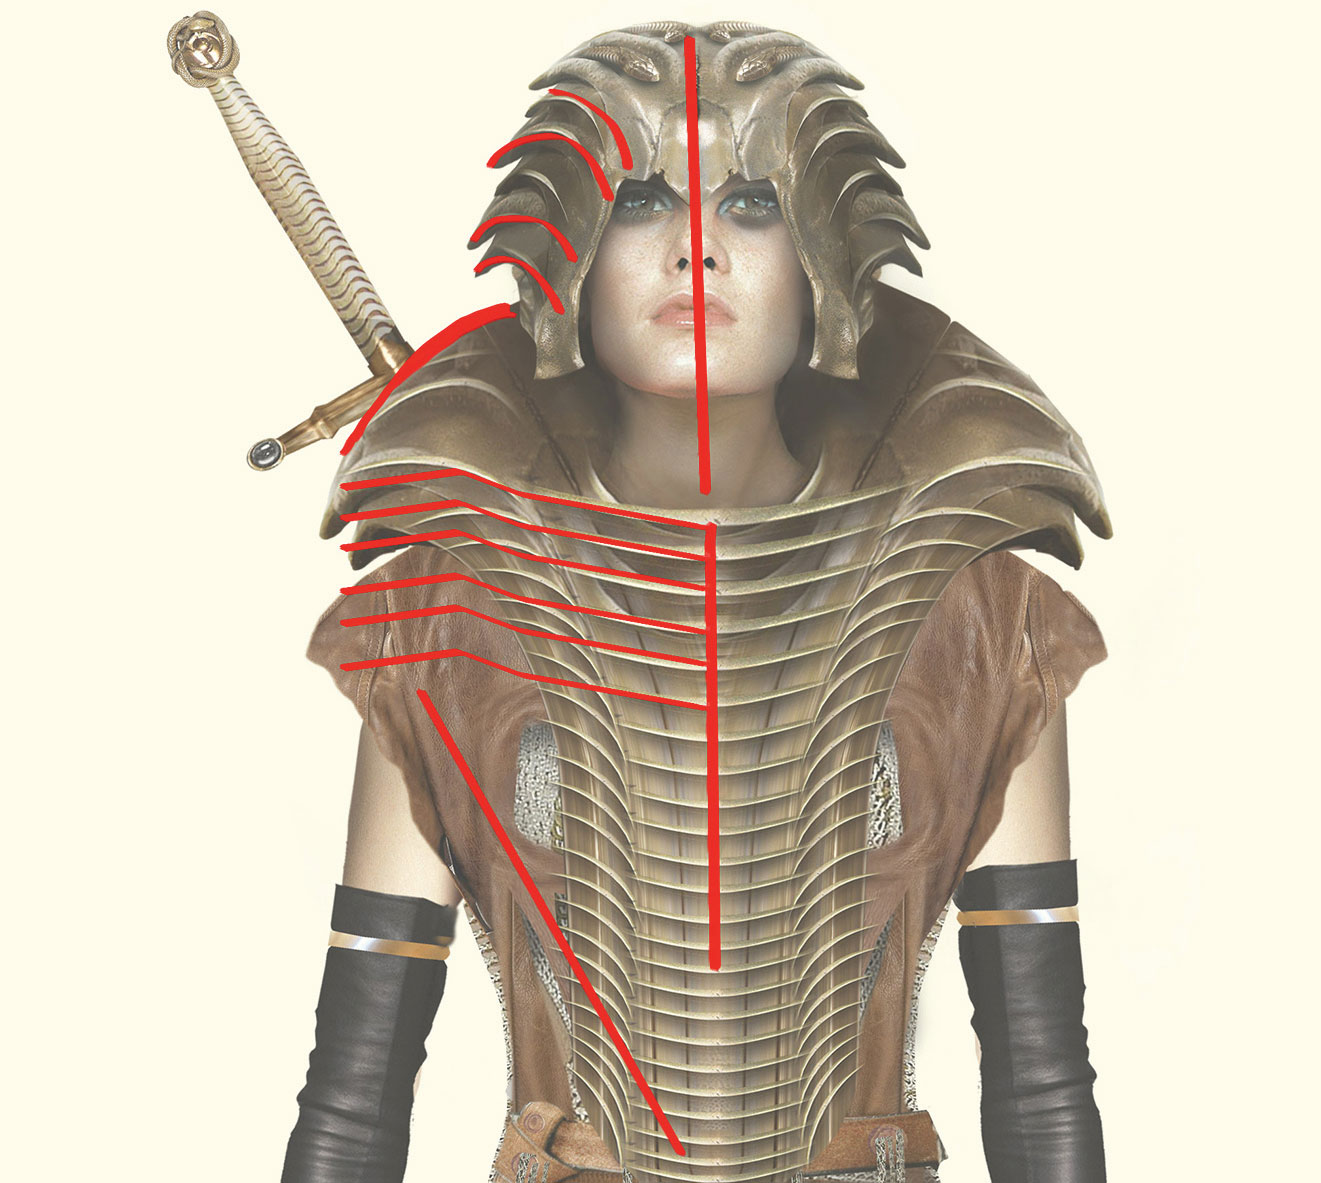 Female fantasy figure with directional lines